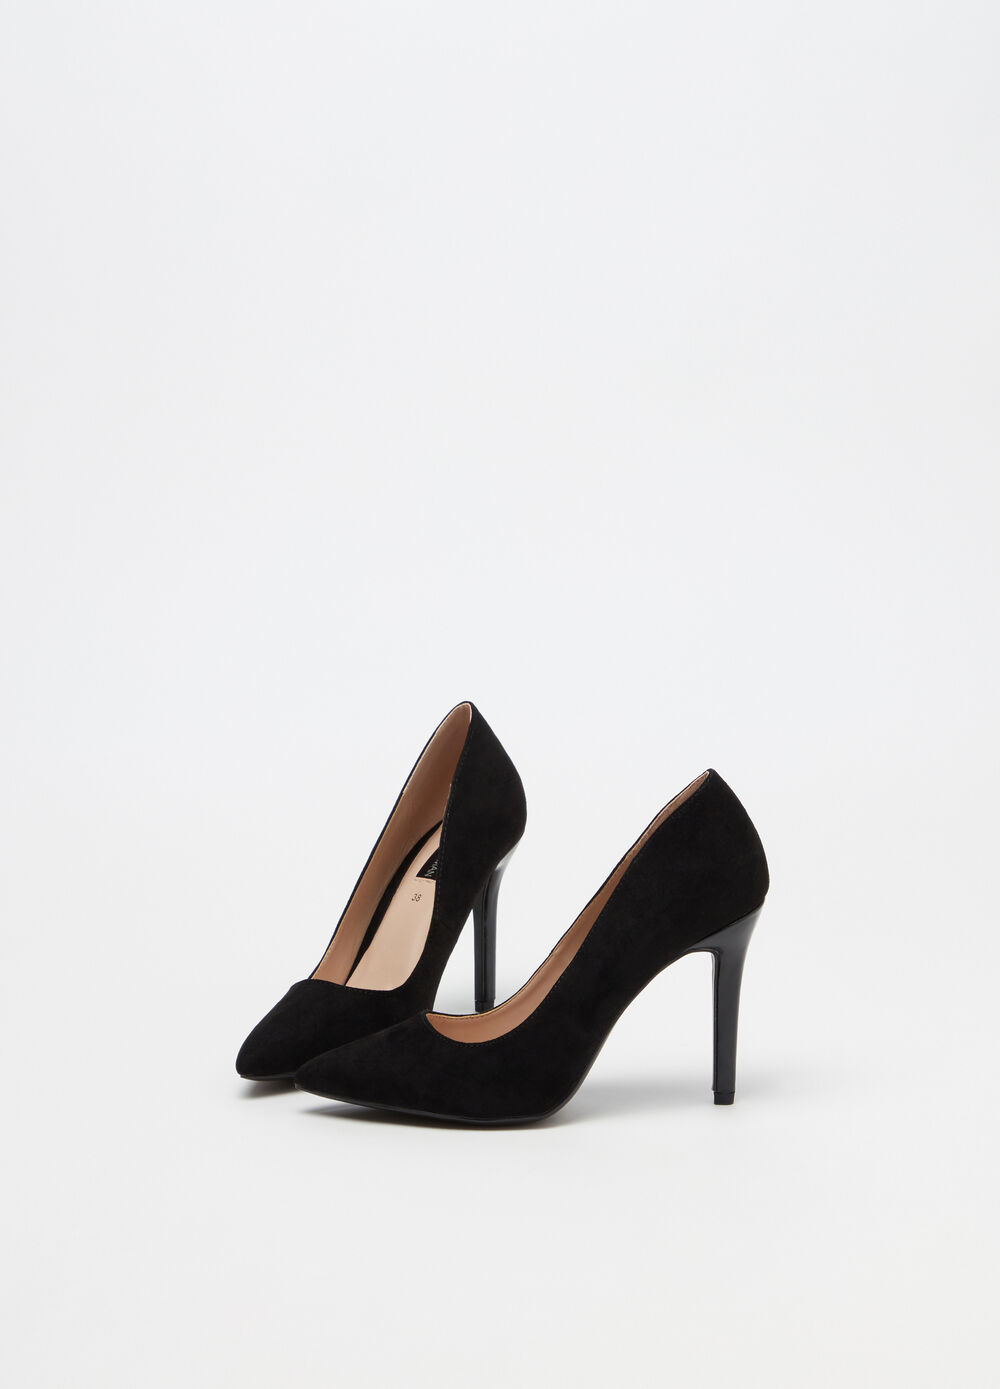 Pointed court shoe with high heel